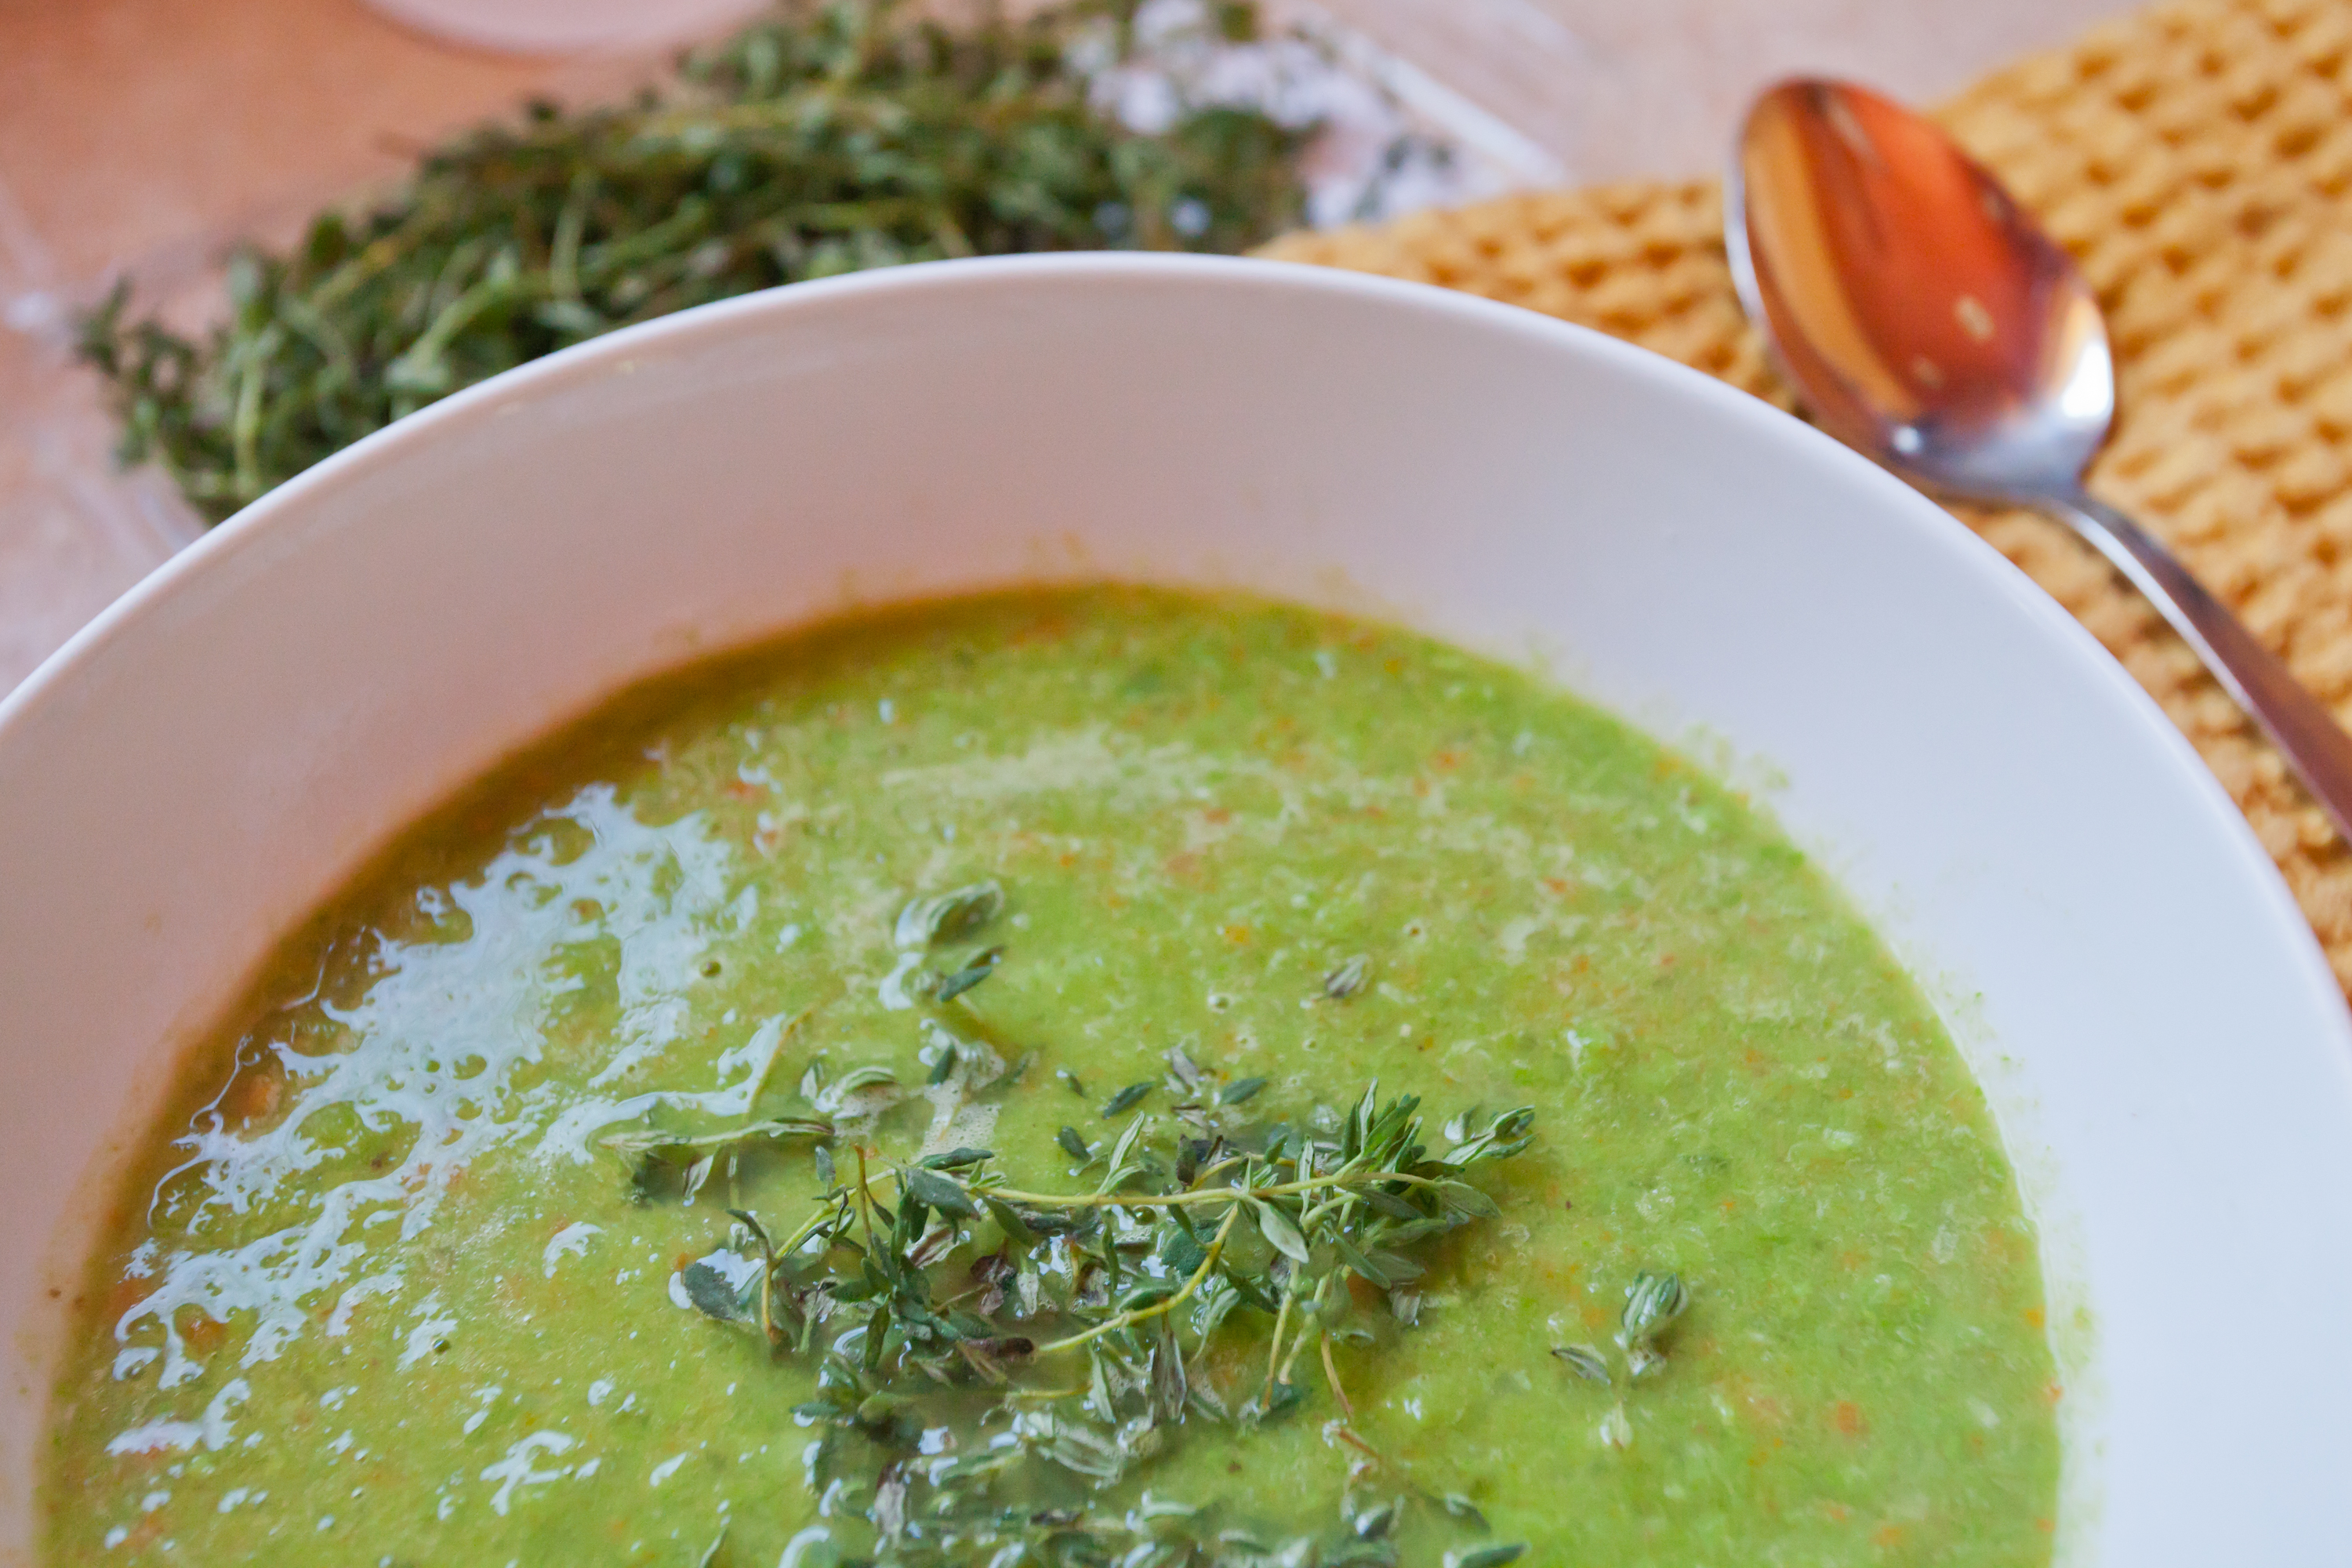 How many calories are in the pea soup